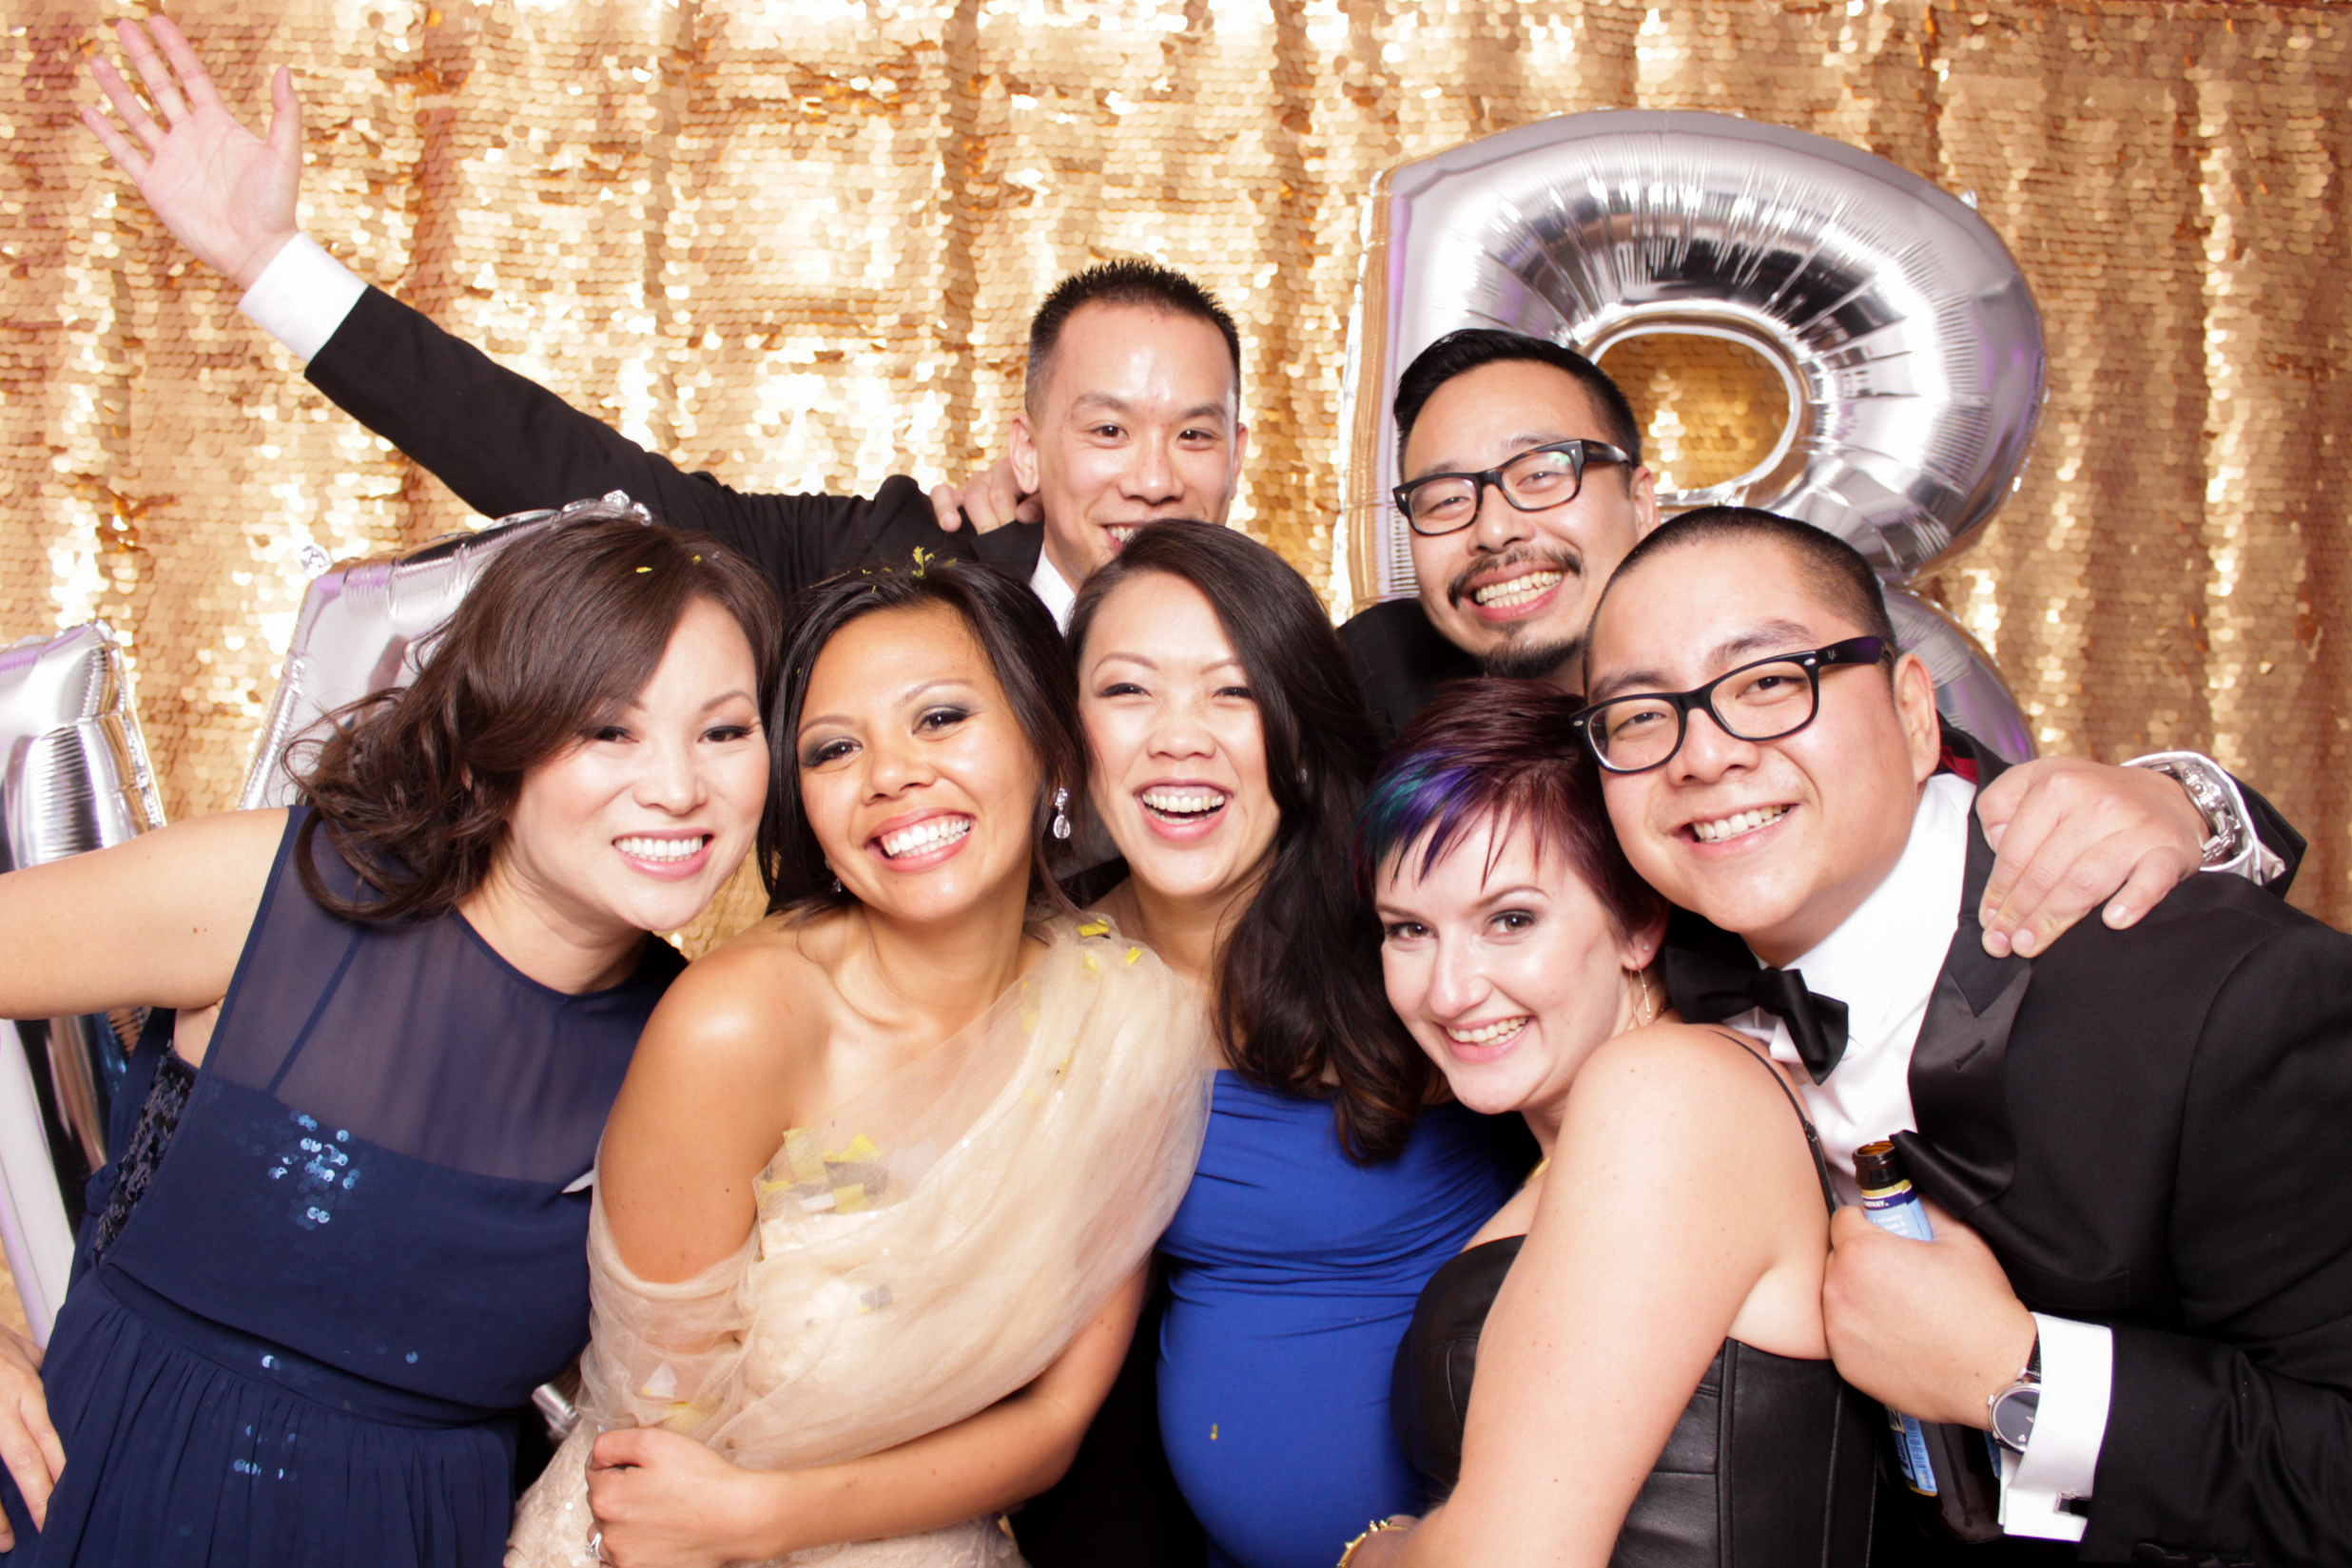 chico-photo-booth-rental-group-photo